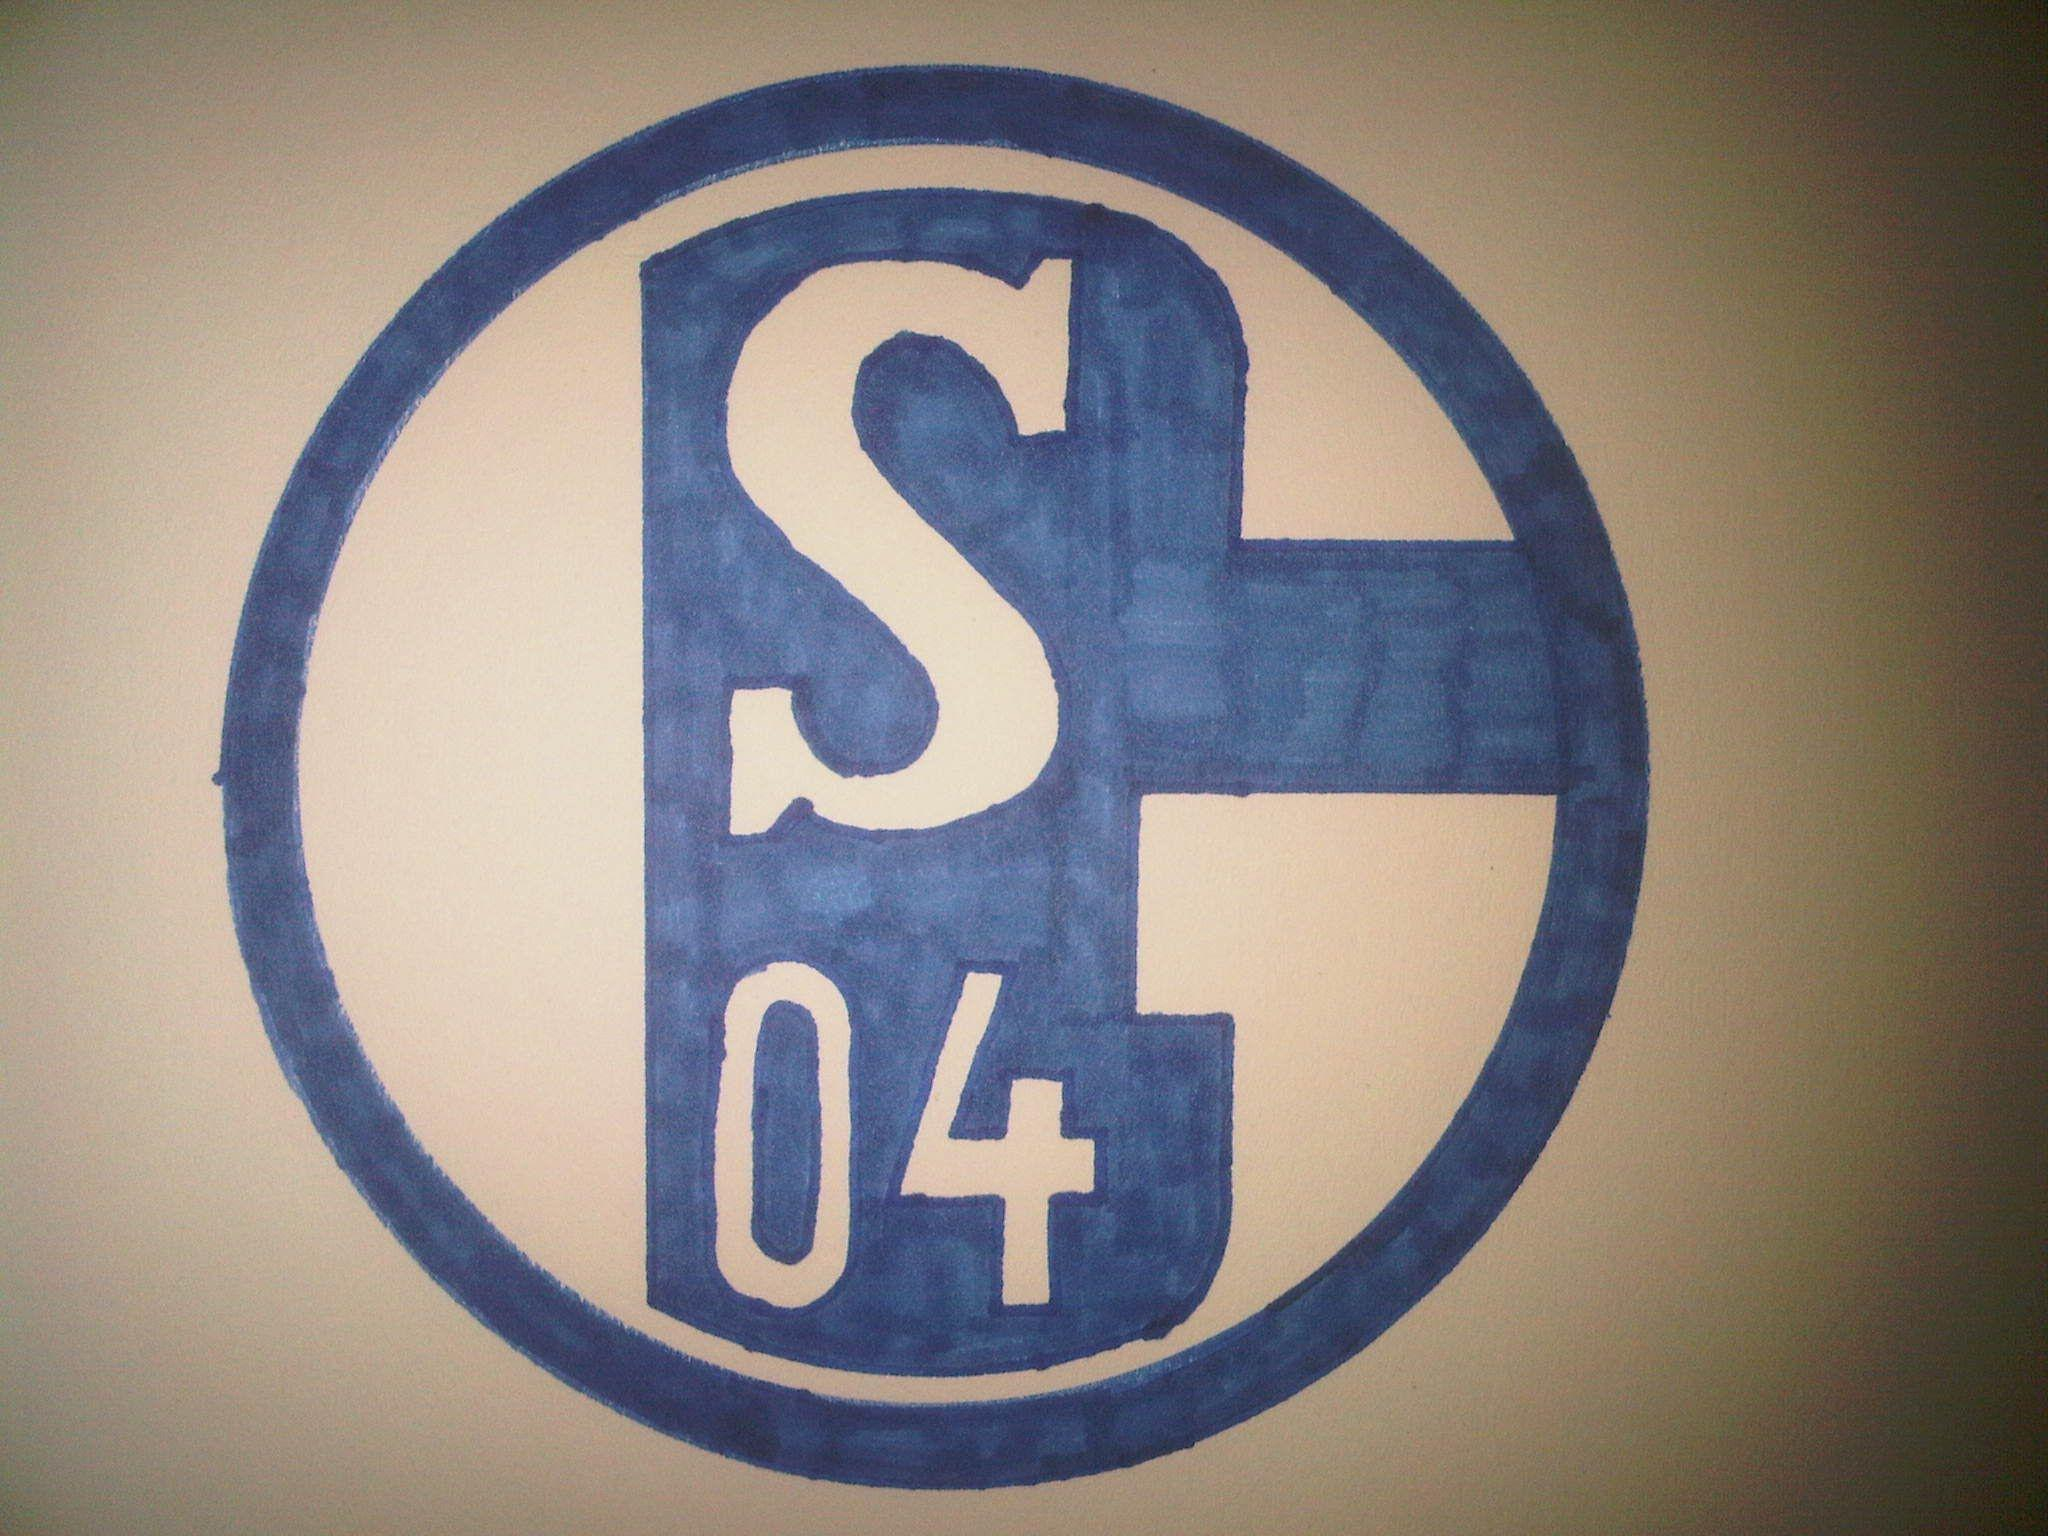 How to Draw the FC Schalke 04 logo